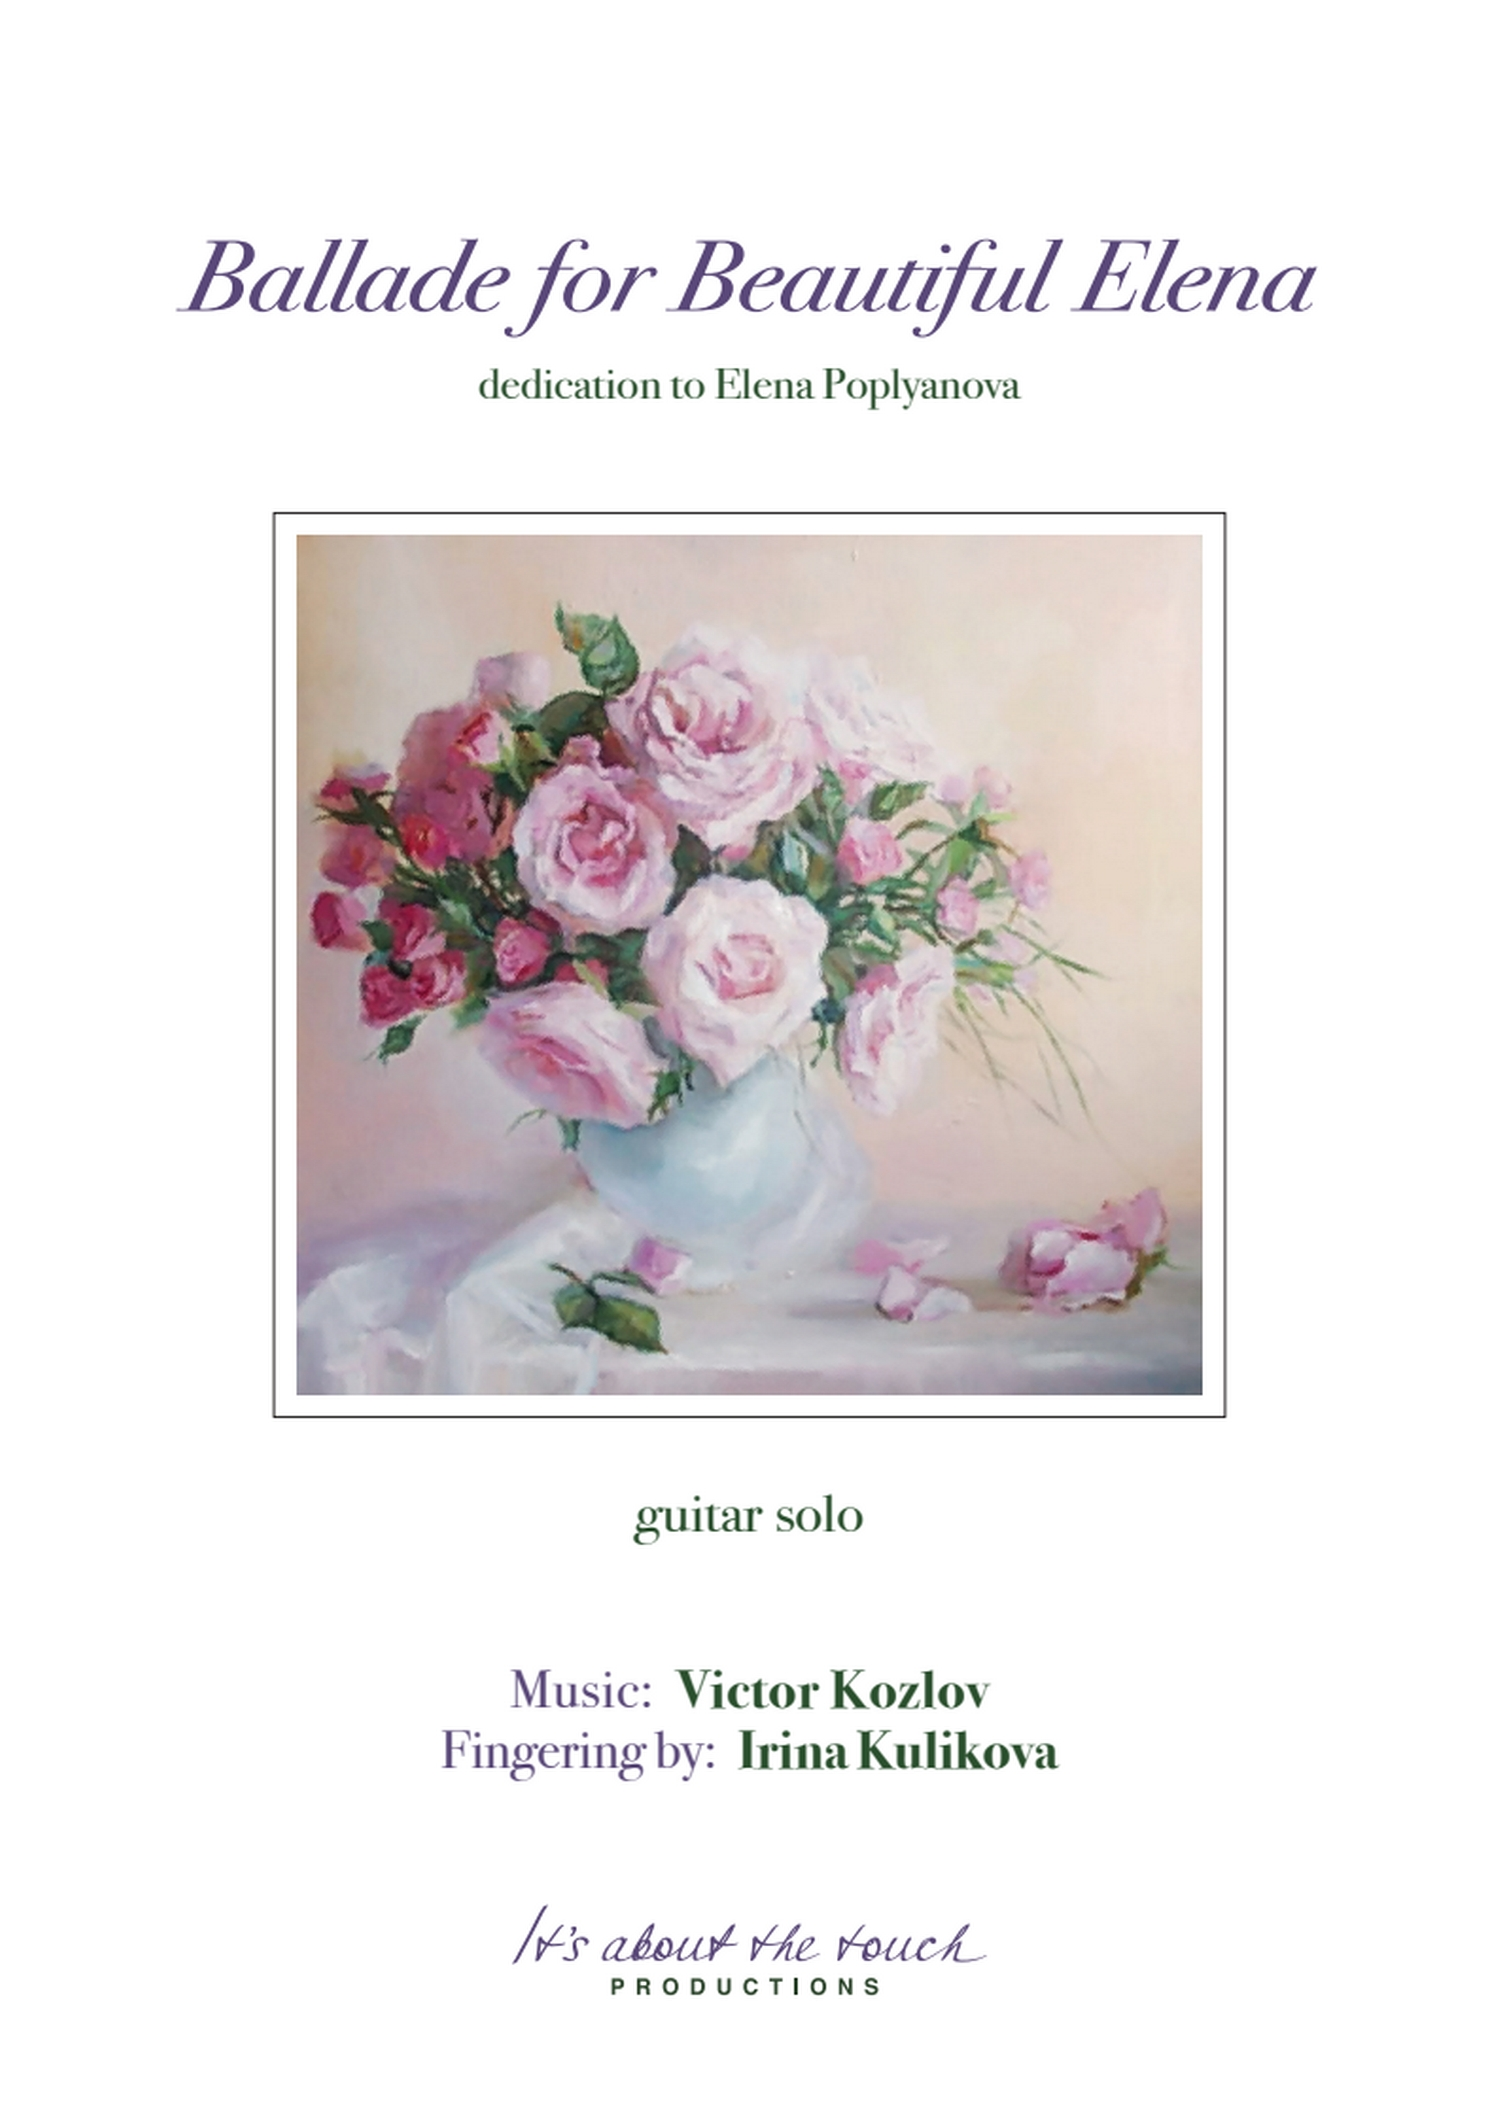 Victor Kozlov - Ballade for Beautiful Elena score cover